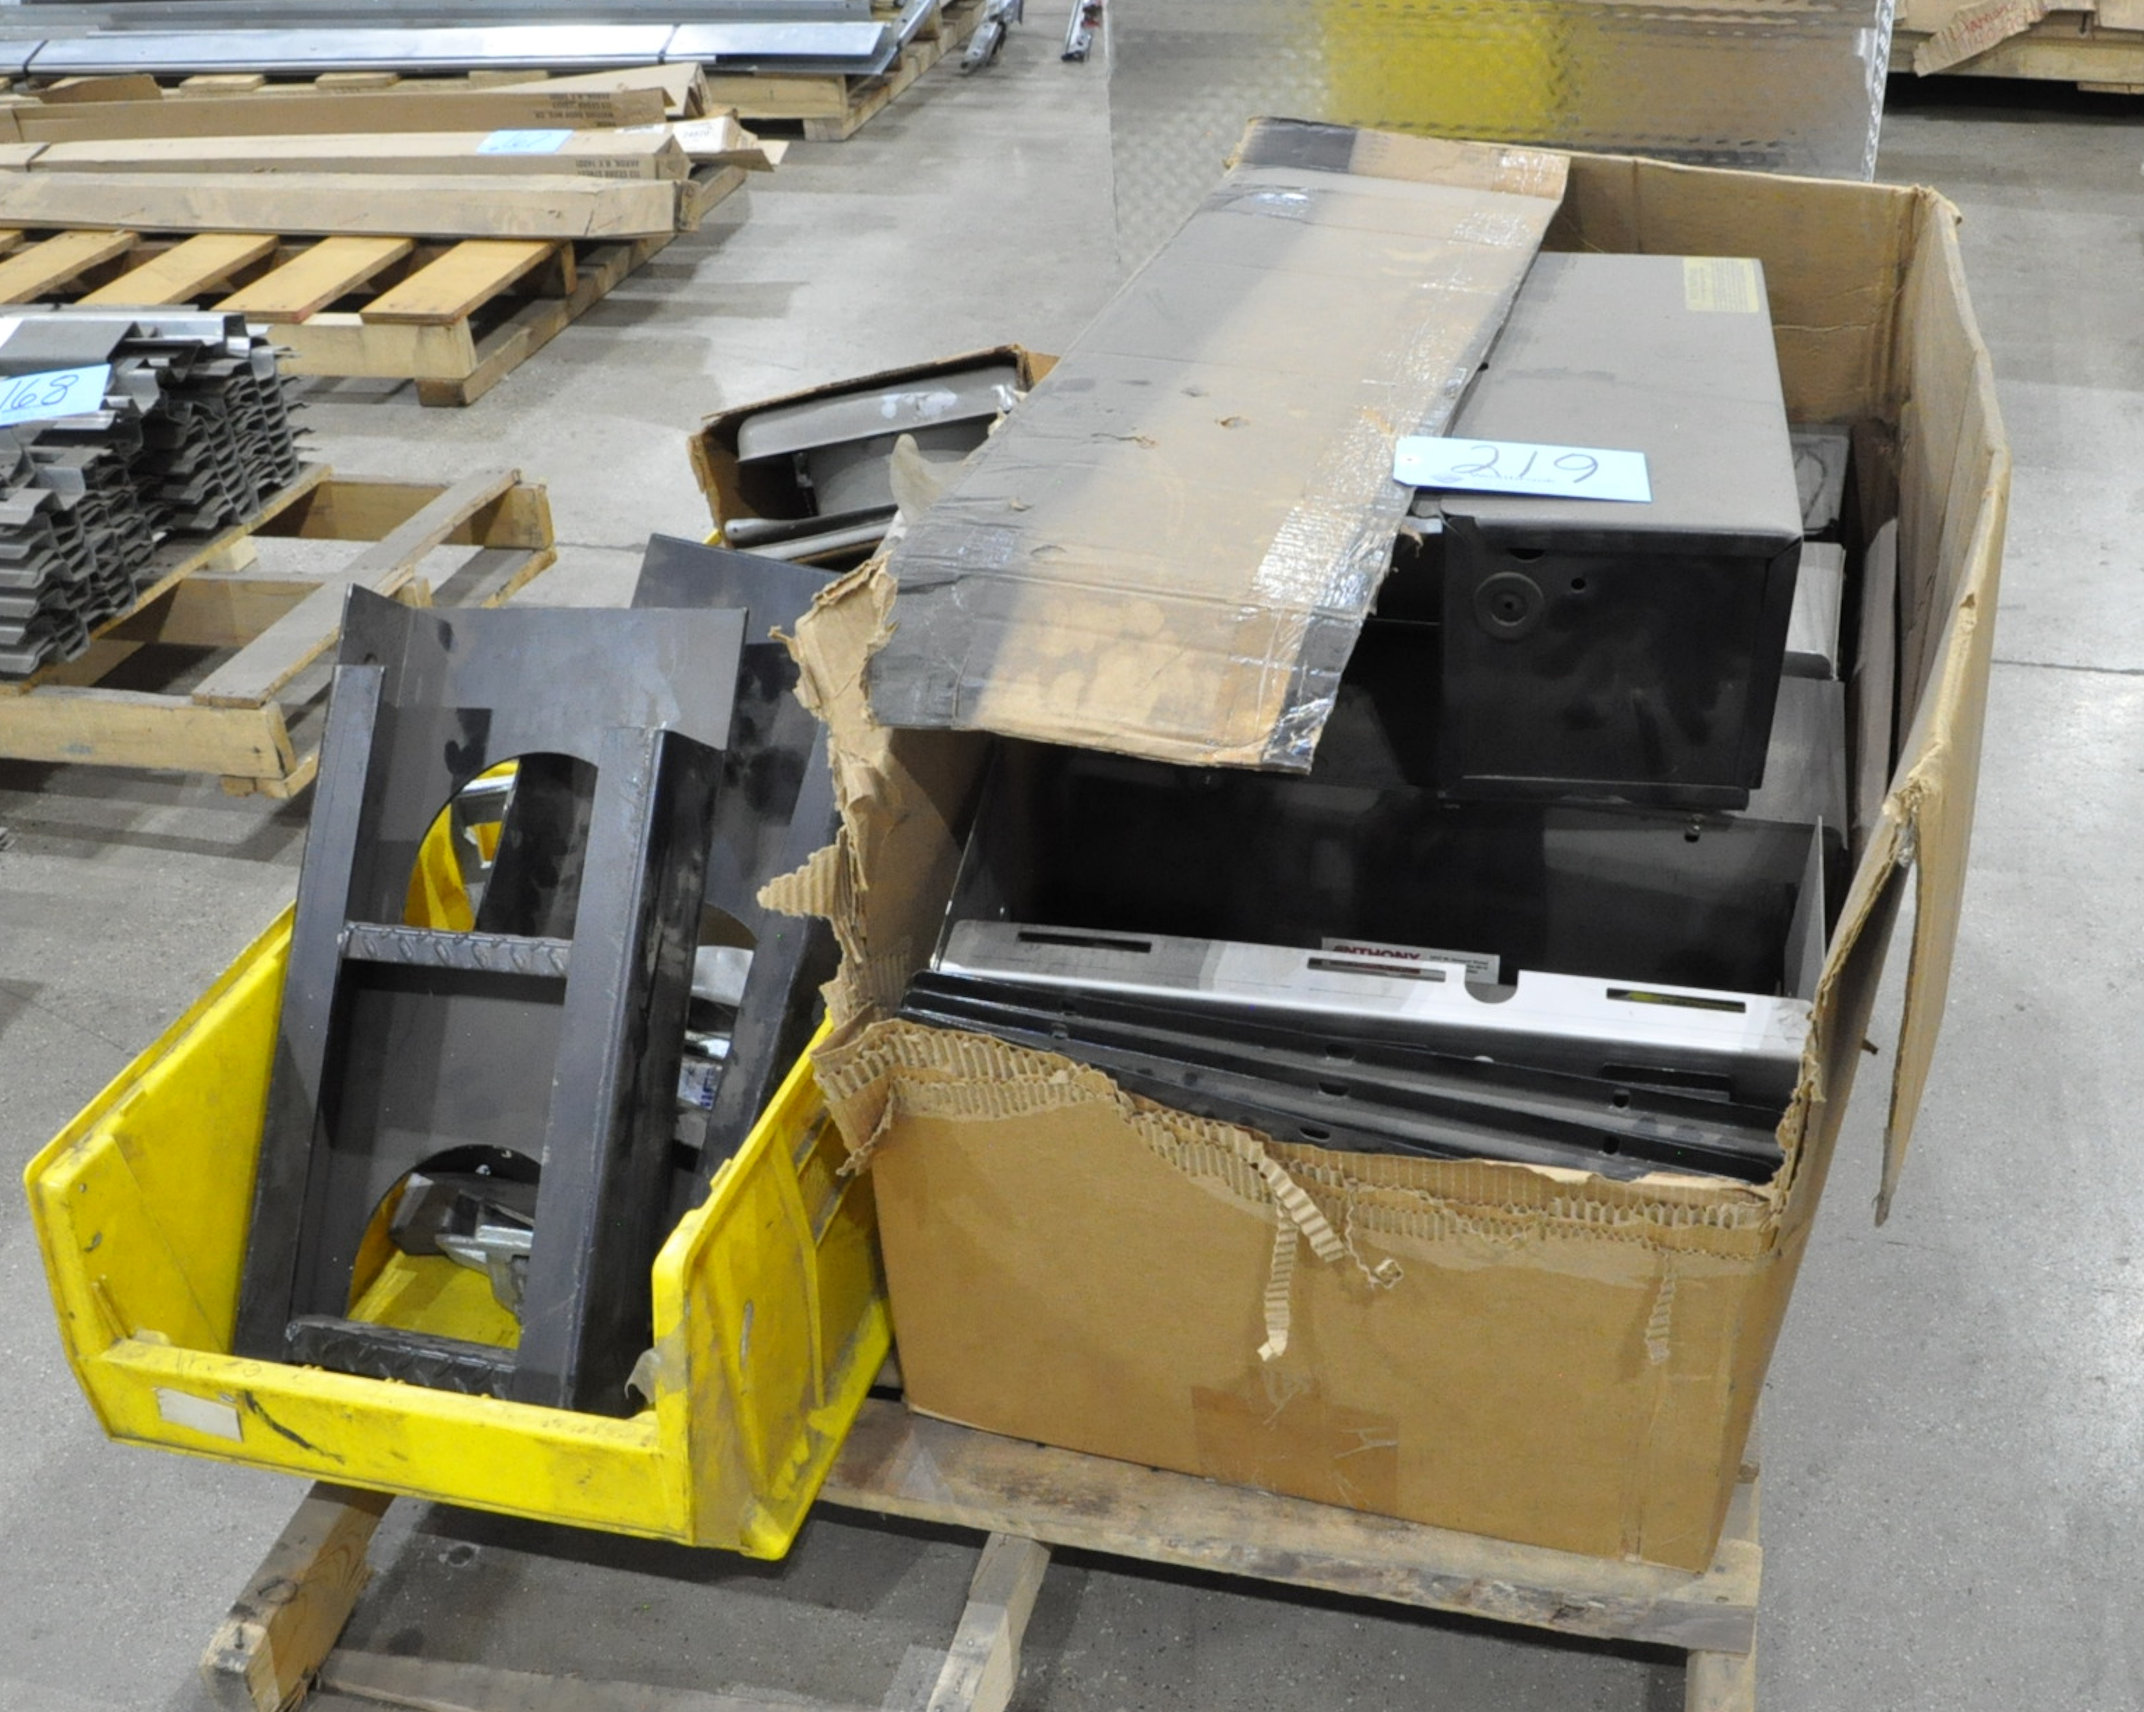 Lot-Lift Gate Assembly Parts on (1) Pallet